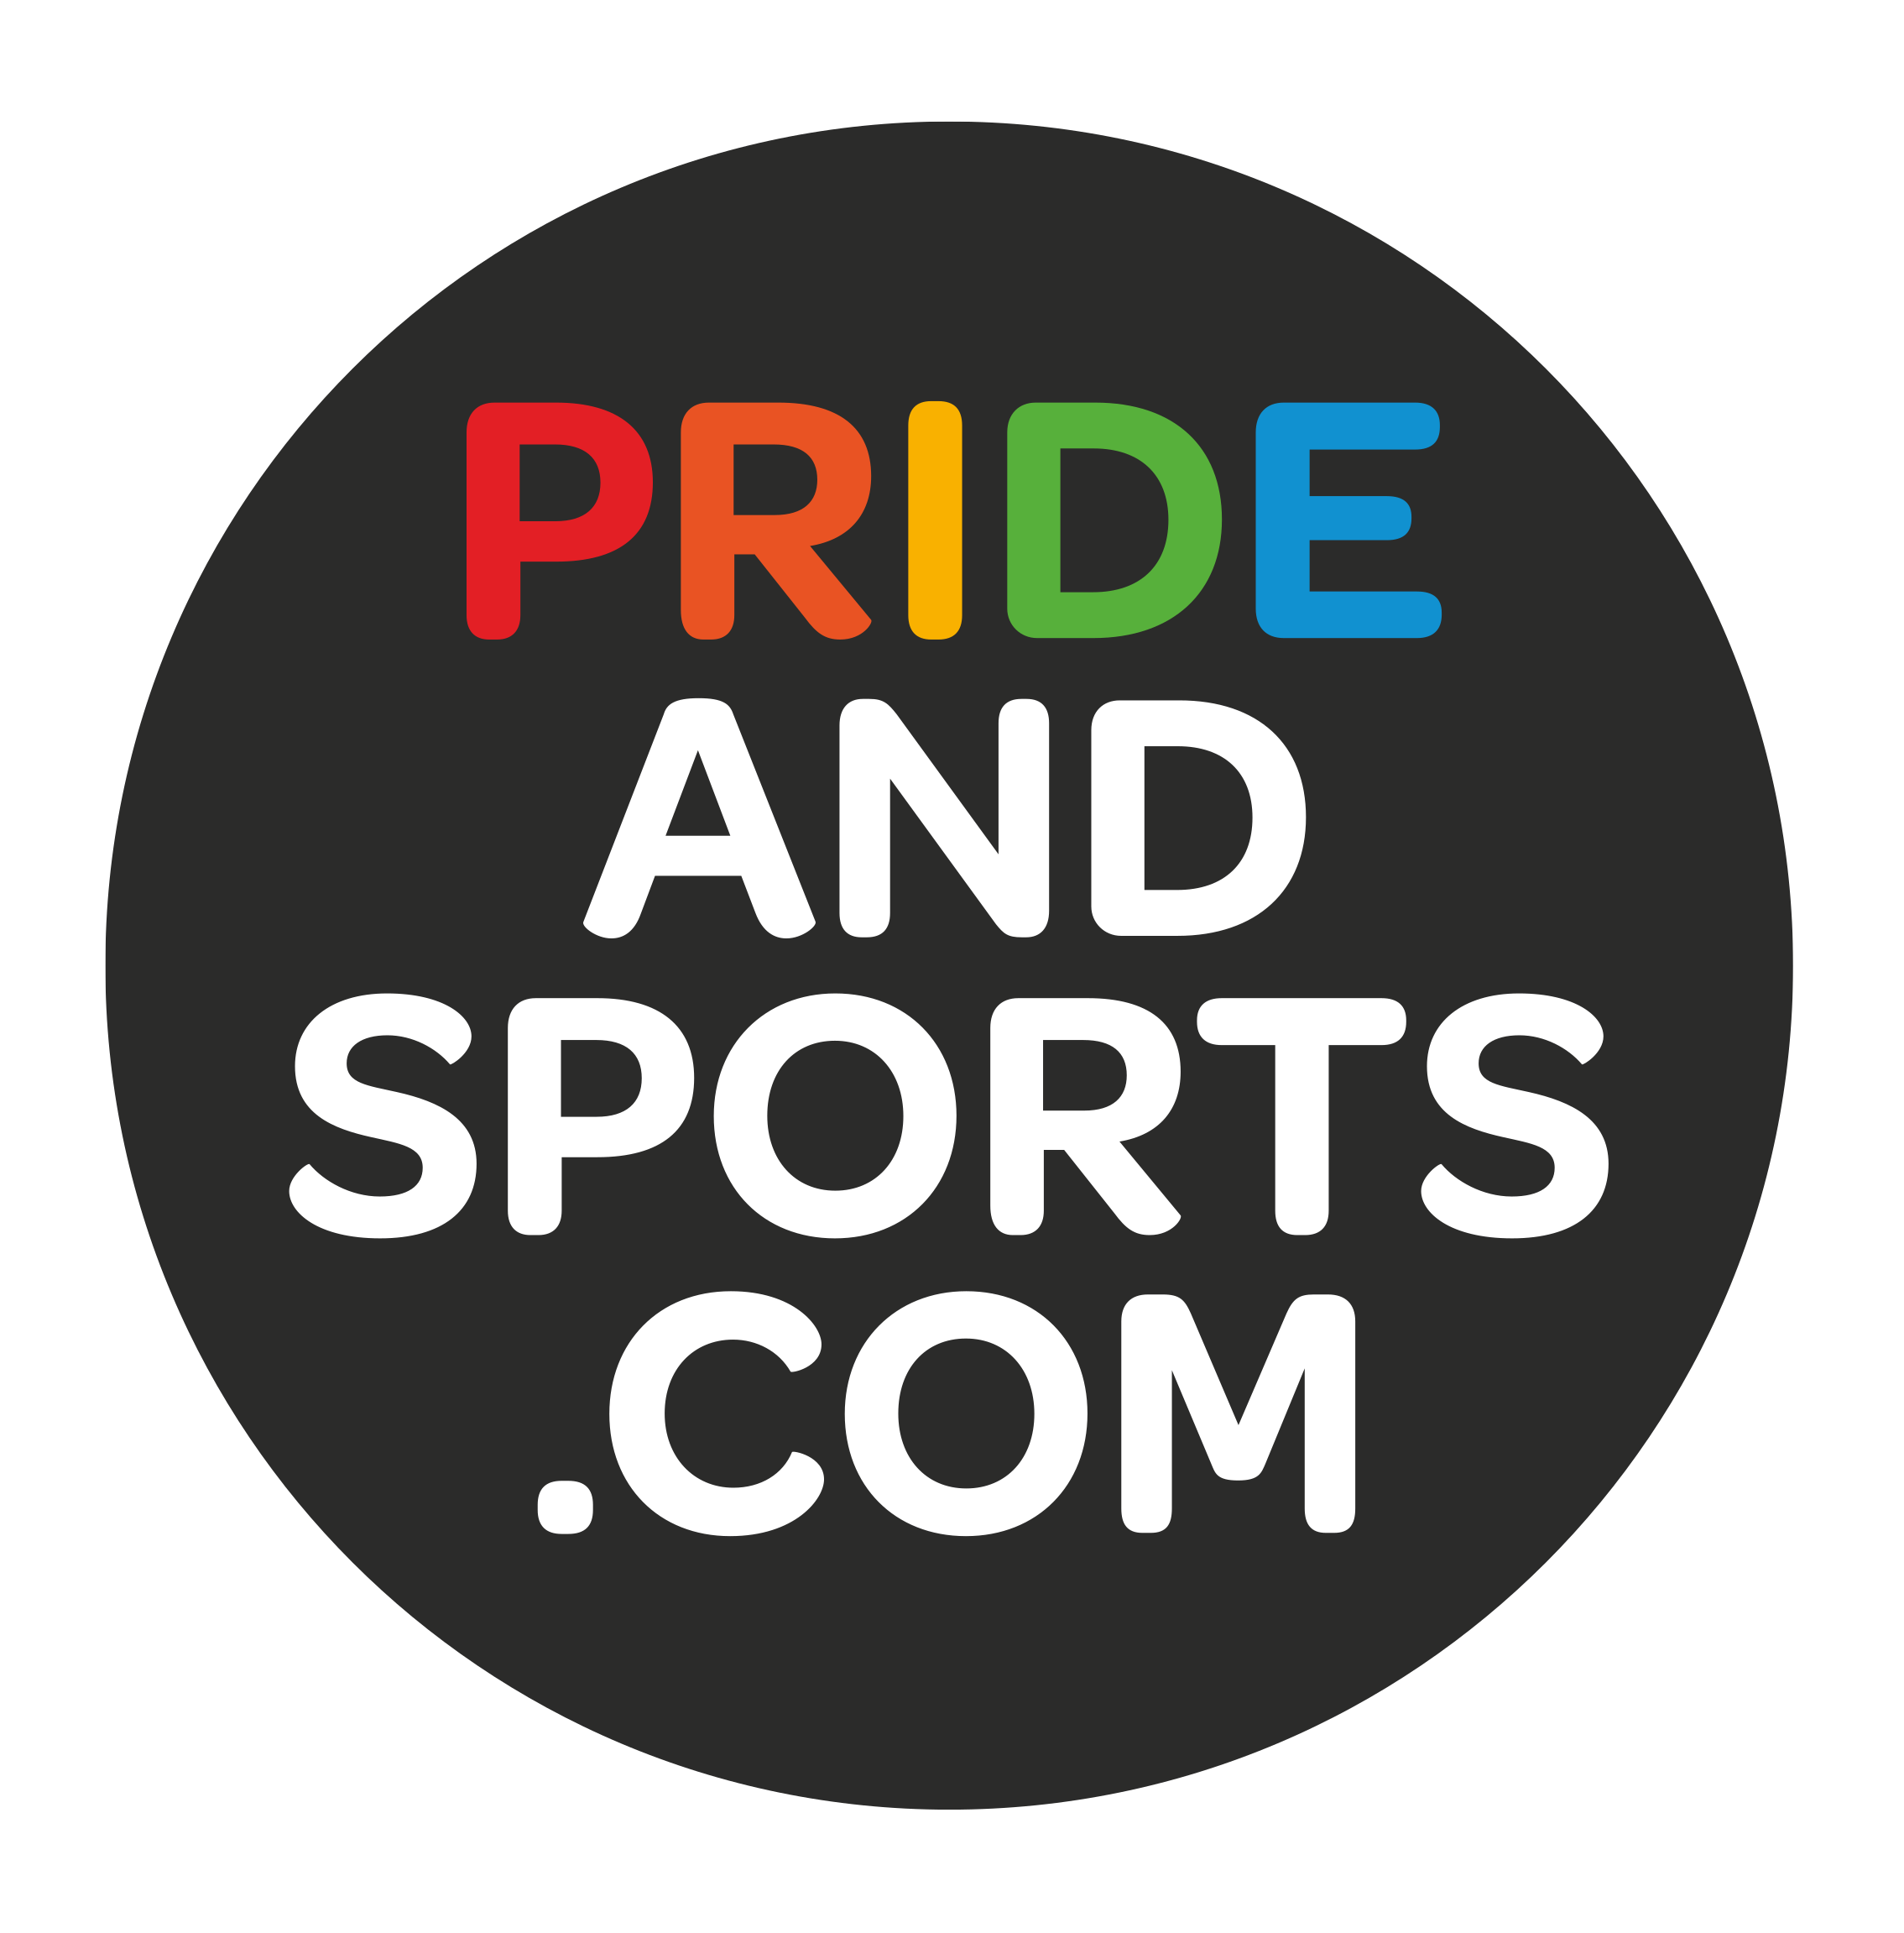 Pride and Sports